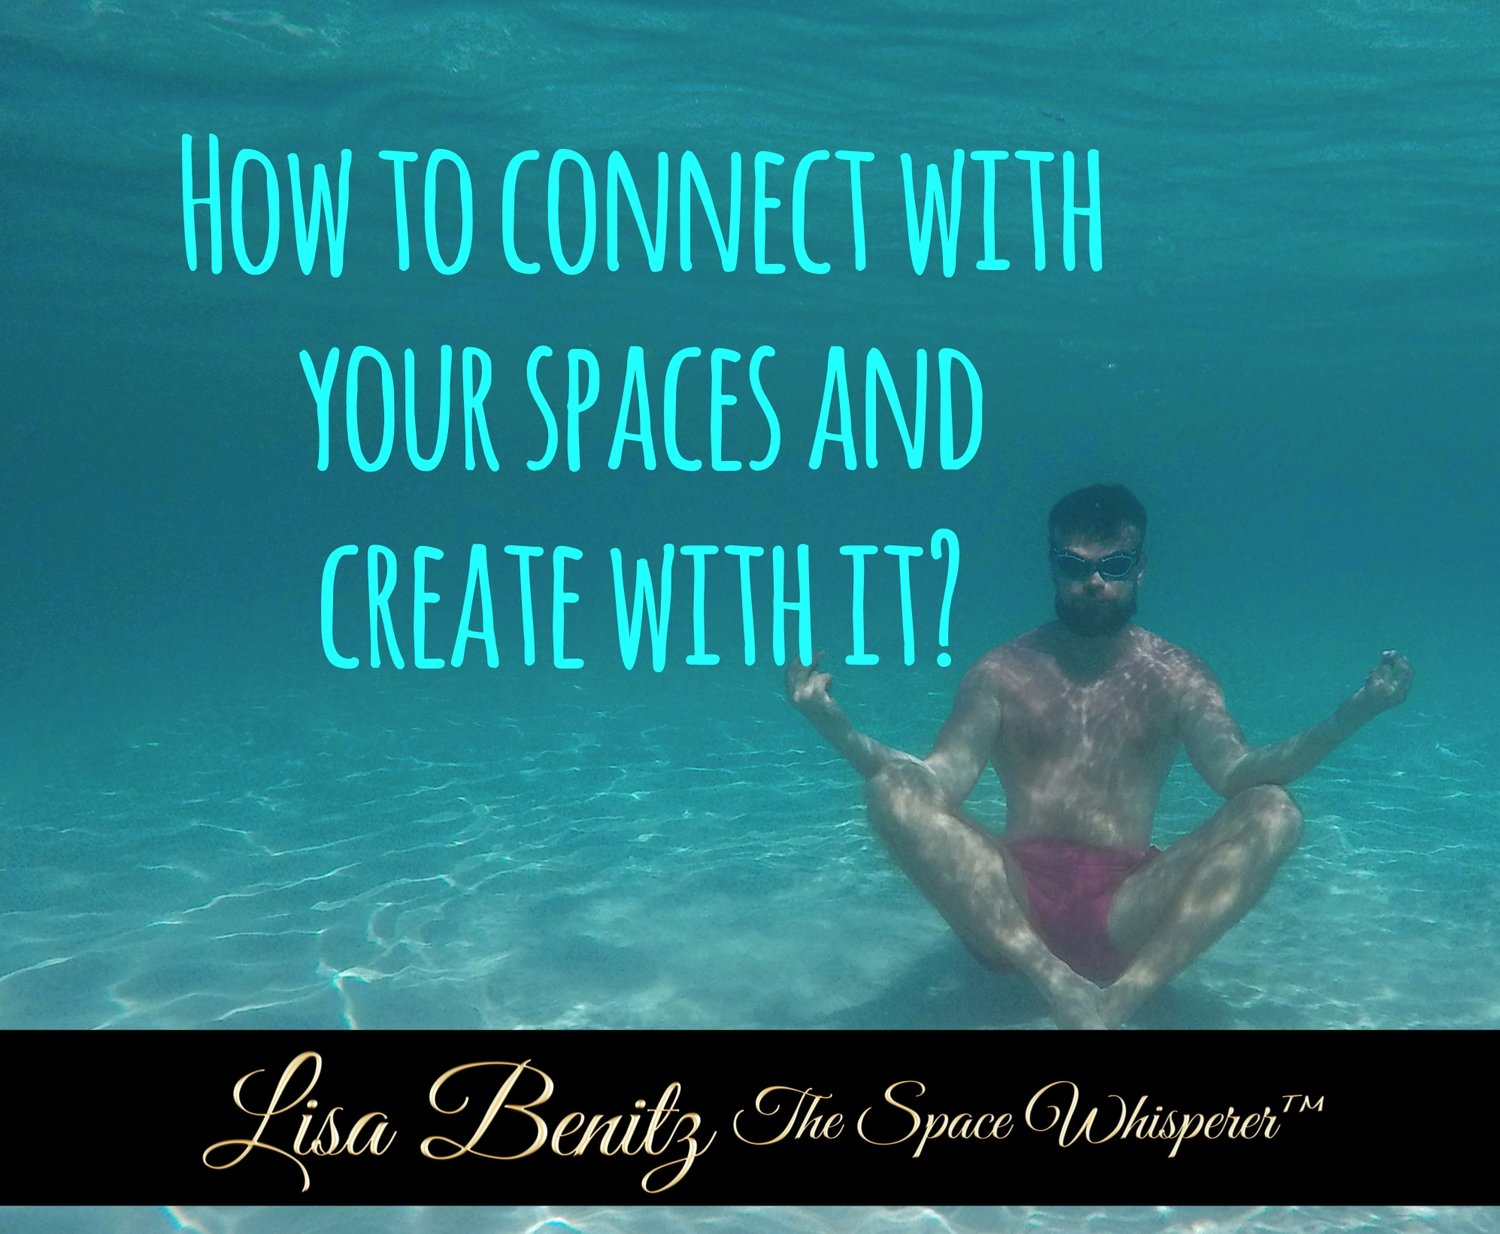 How To Connect with Your Spaces and Create with it?